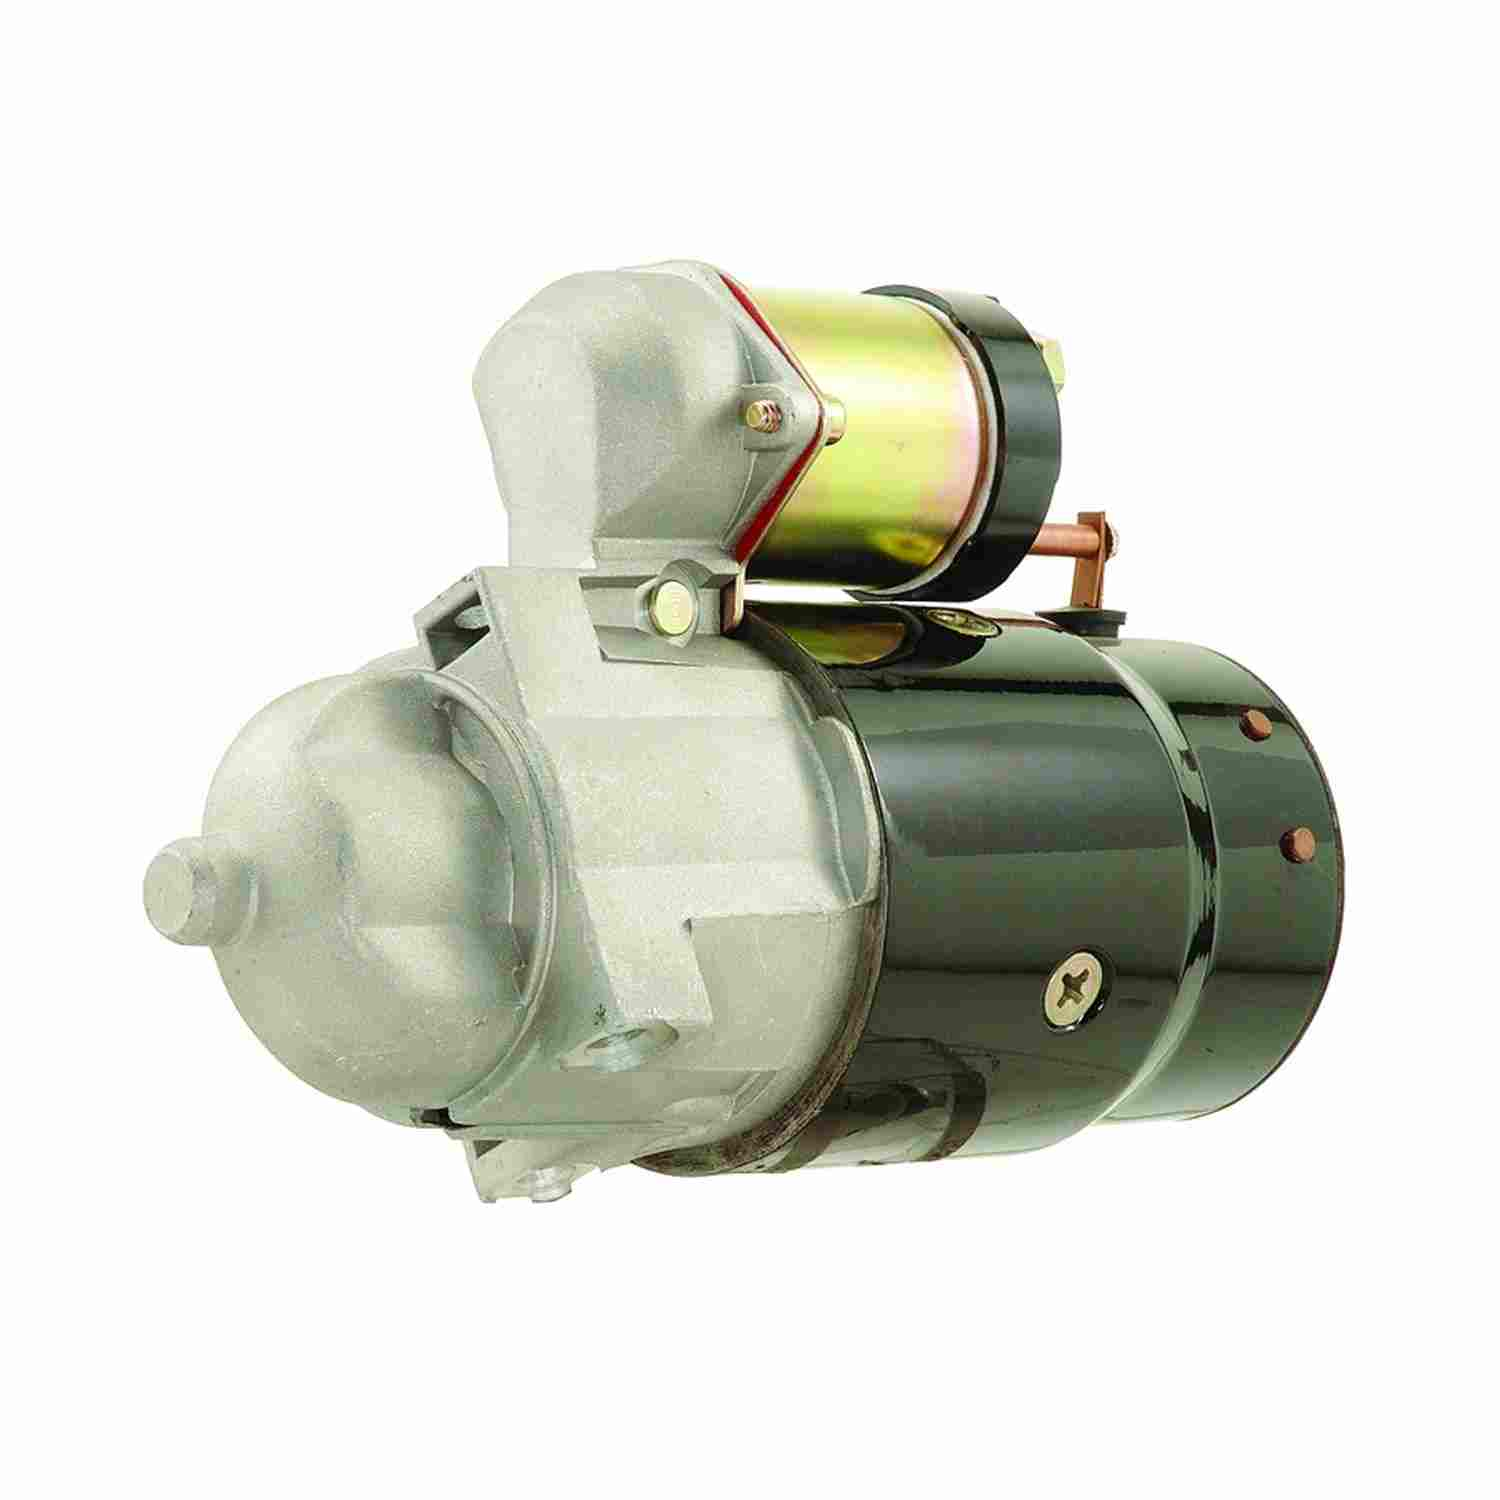 ACDELCO GOLD/PROFESSIONAL - Starter Motor - DCC 337-1016